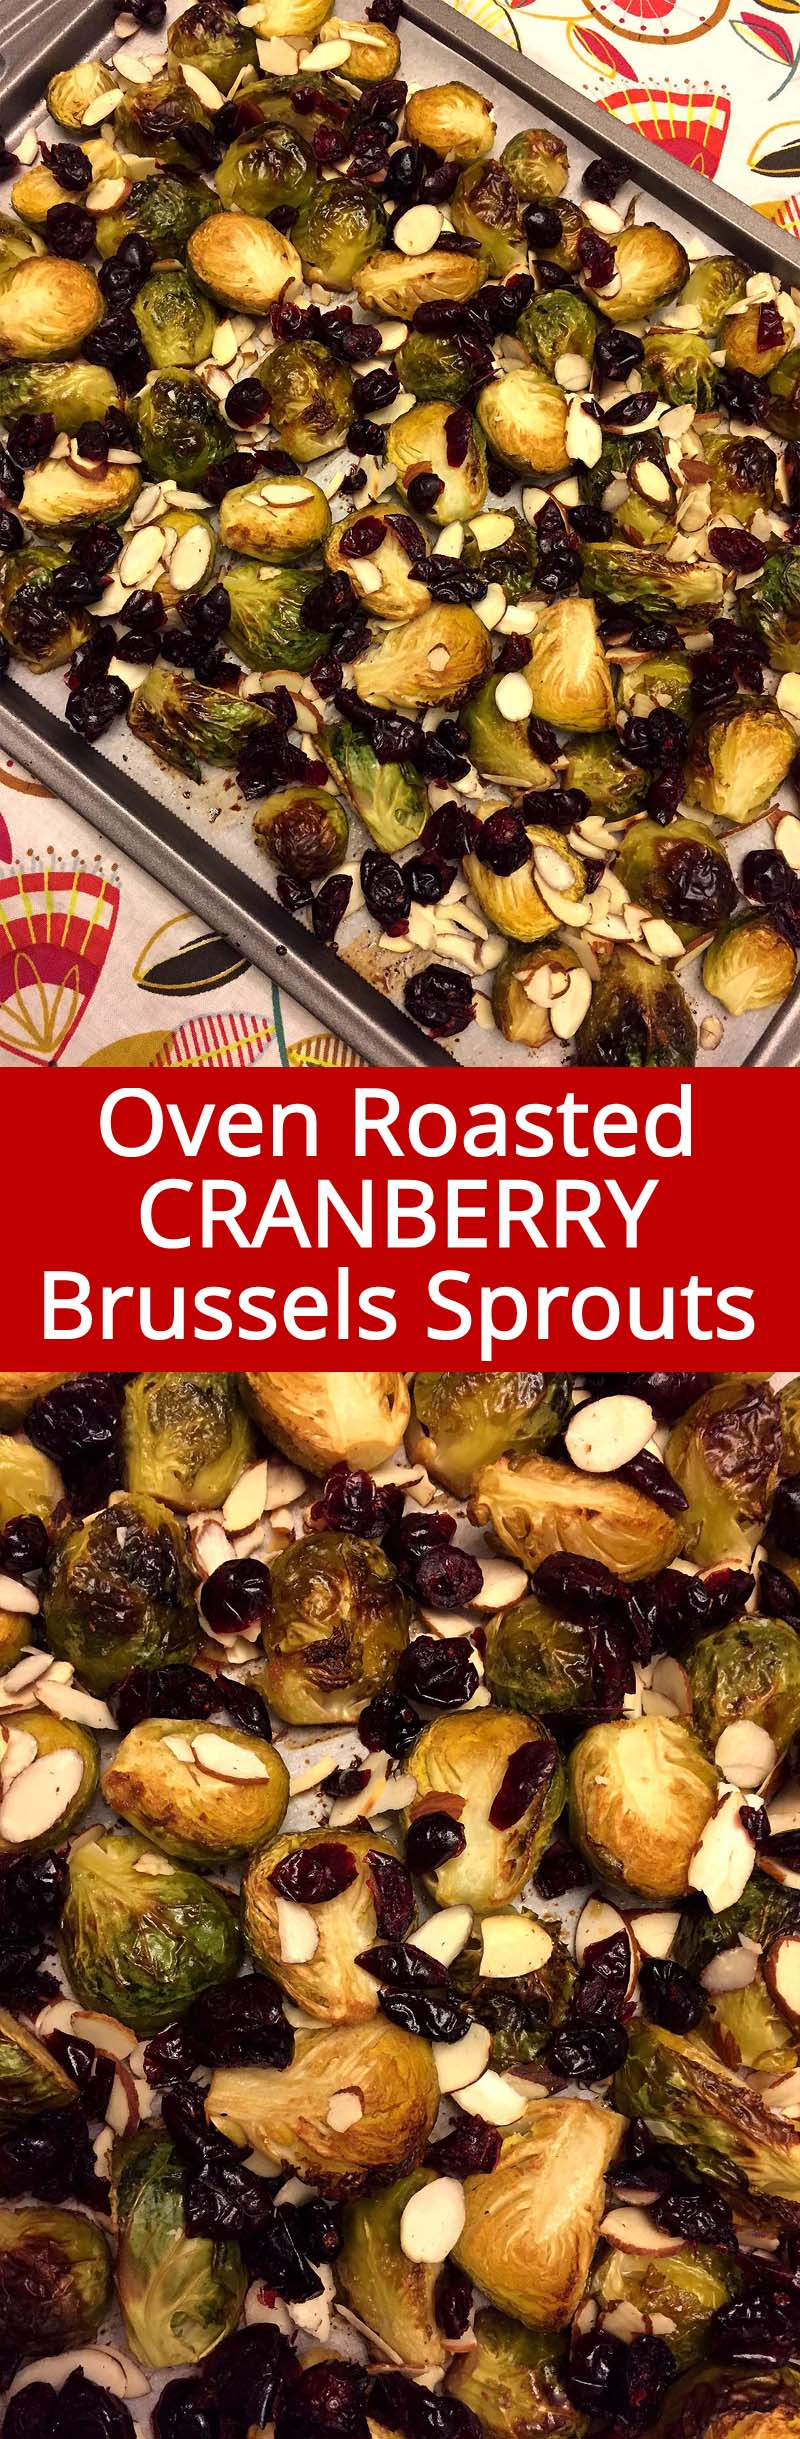 These amazing balsamic brussels sprouts are oven roasted to perfection with dried cranberries and almonds! They taste so deep and caramelized, mouthwatering! This is my favorite way of eating brussels sprouts!